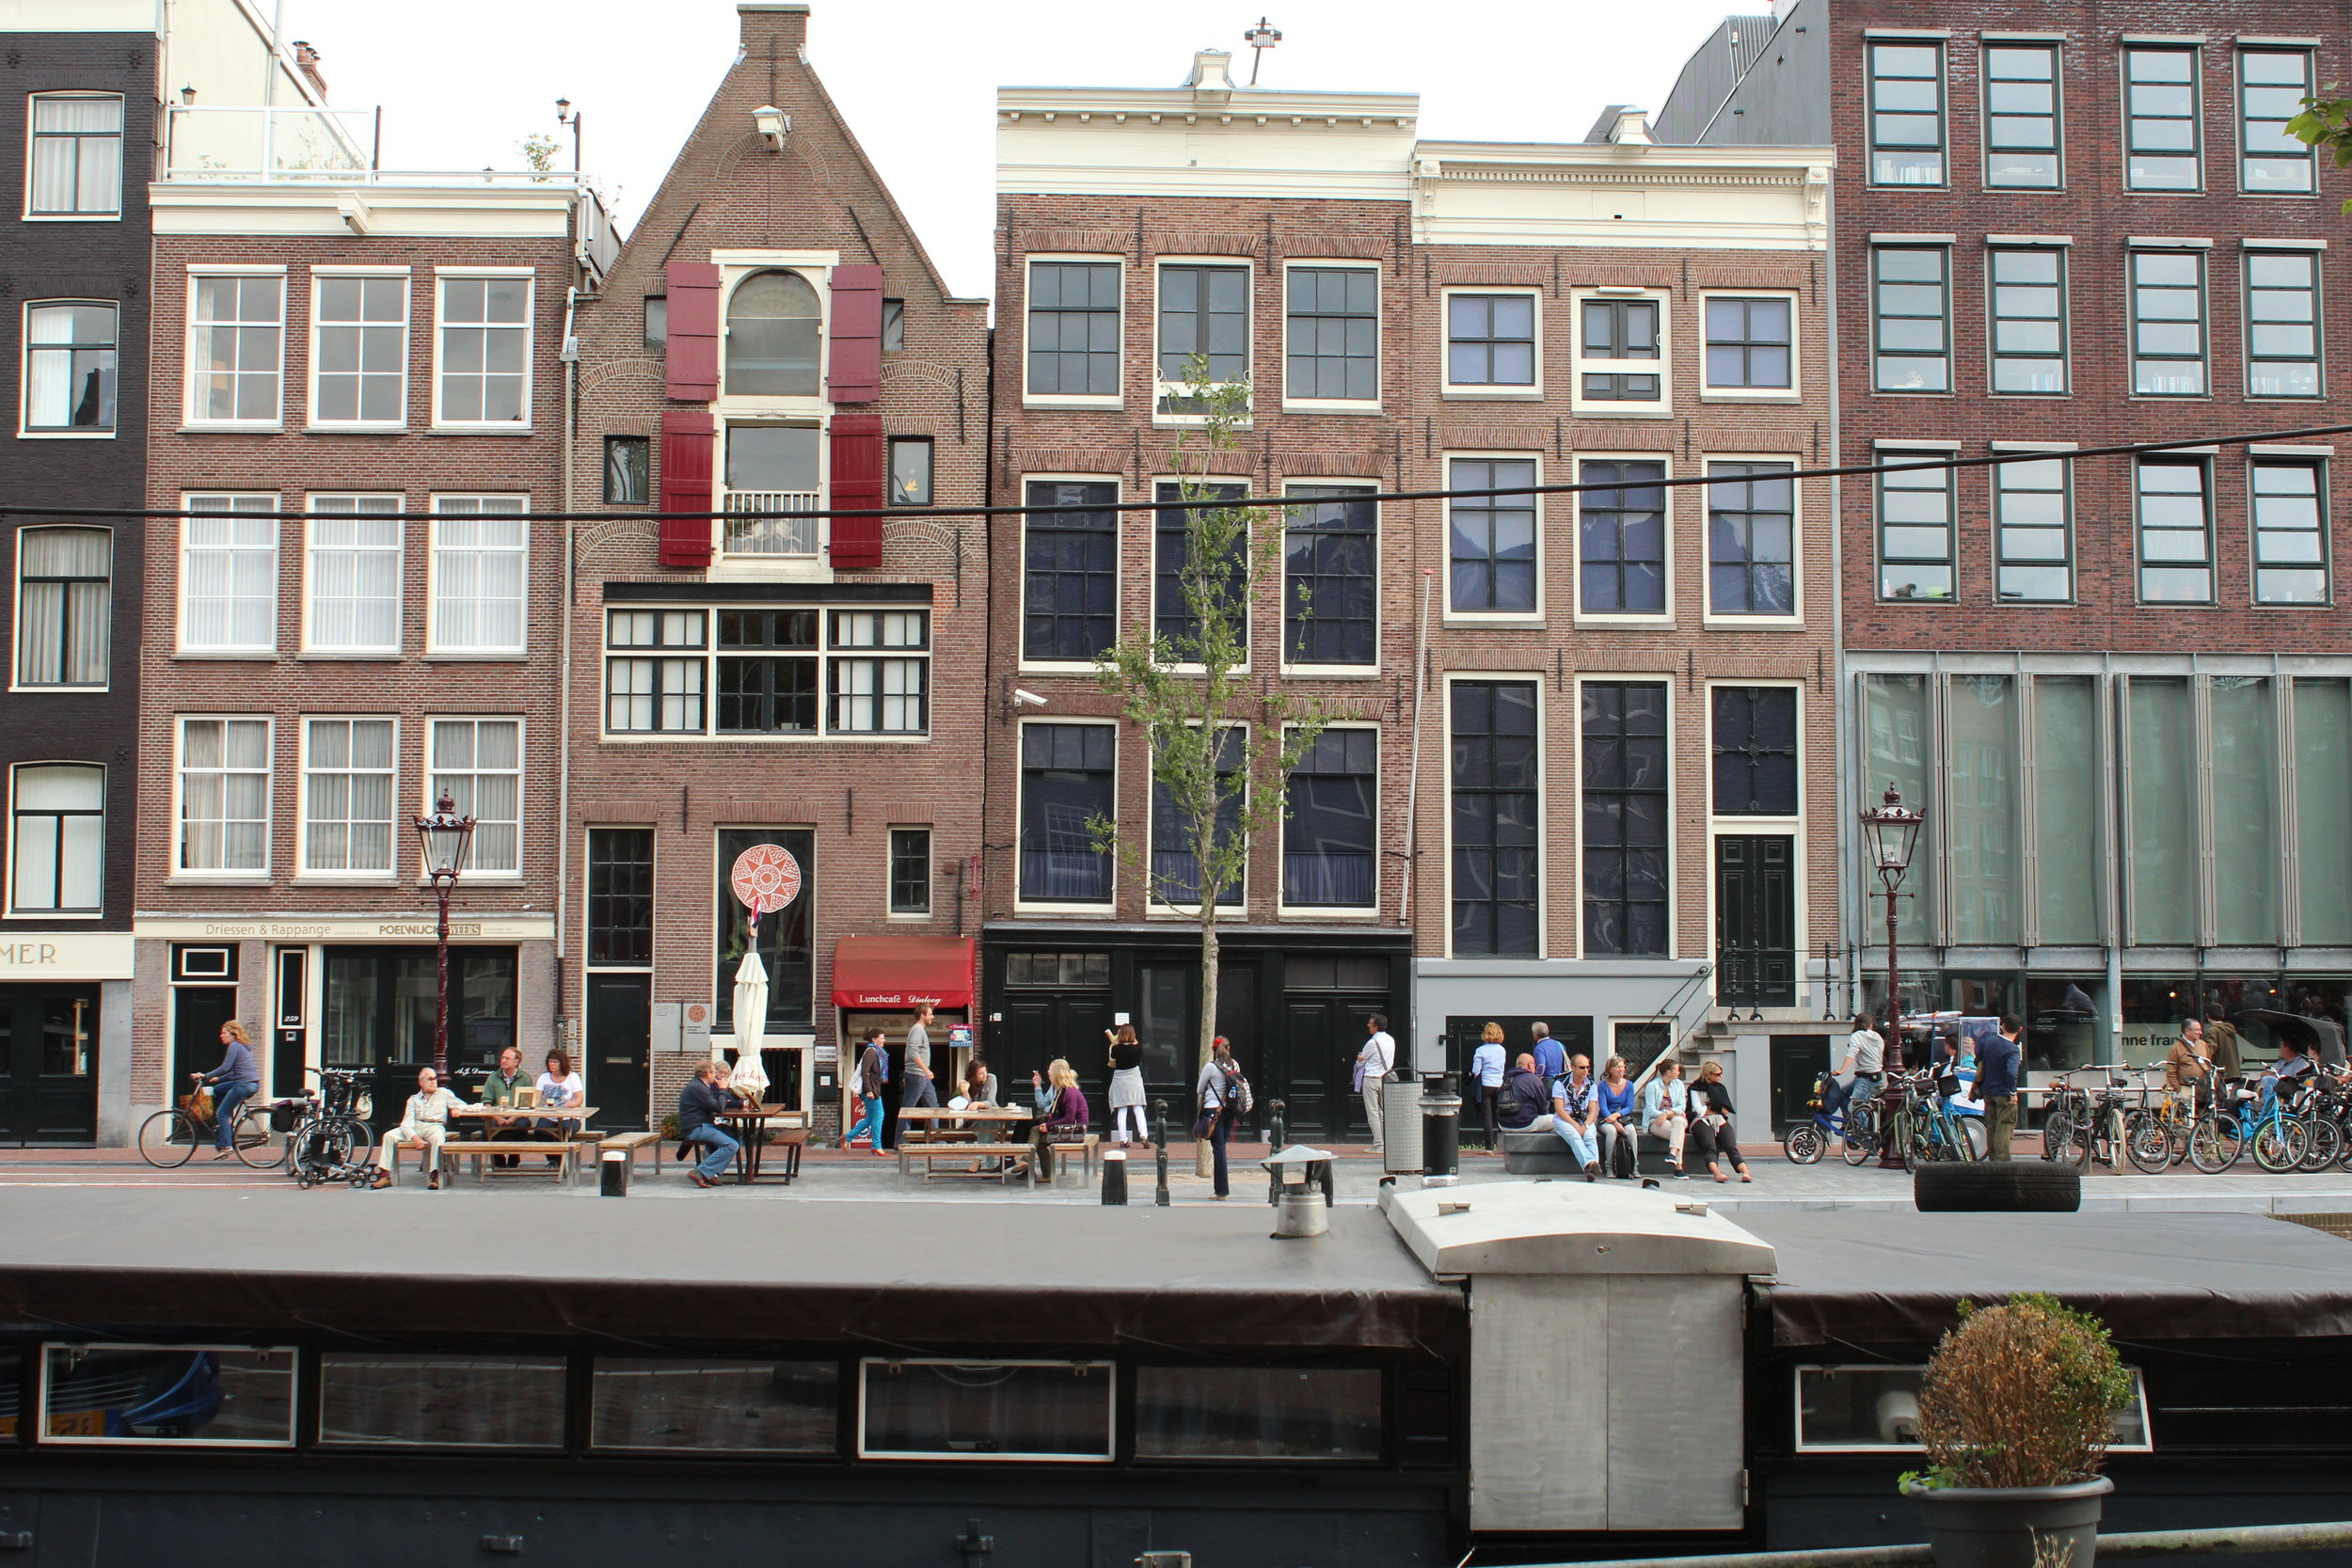 The Anne Frank house, the actual house where she and her family hid in the attic, is in the center with the tree, Prinsengracht 263. The actual house, the one to the right and the modern buildings farther right comprise the Anne Frank House (the museum).